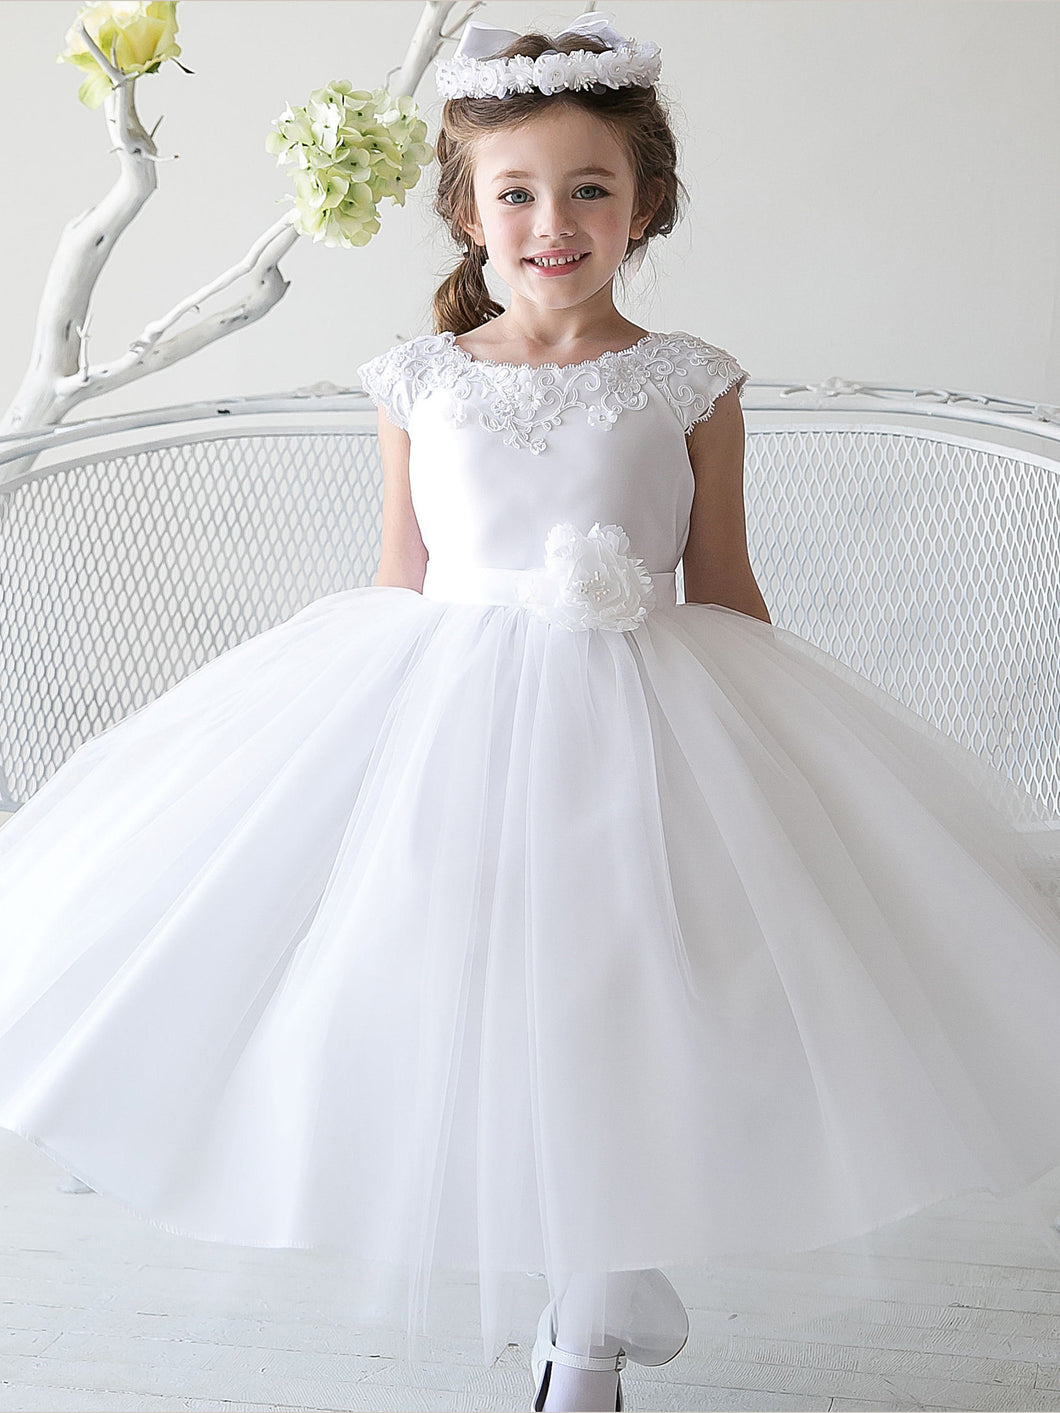 2017 Flower Girl Dresses Tea Length Ribbons Belt White Tulle And